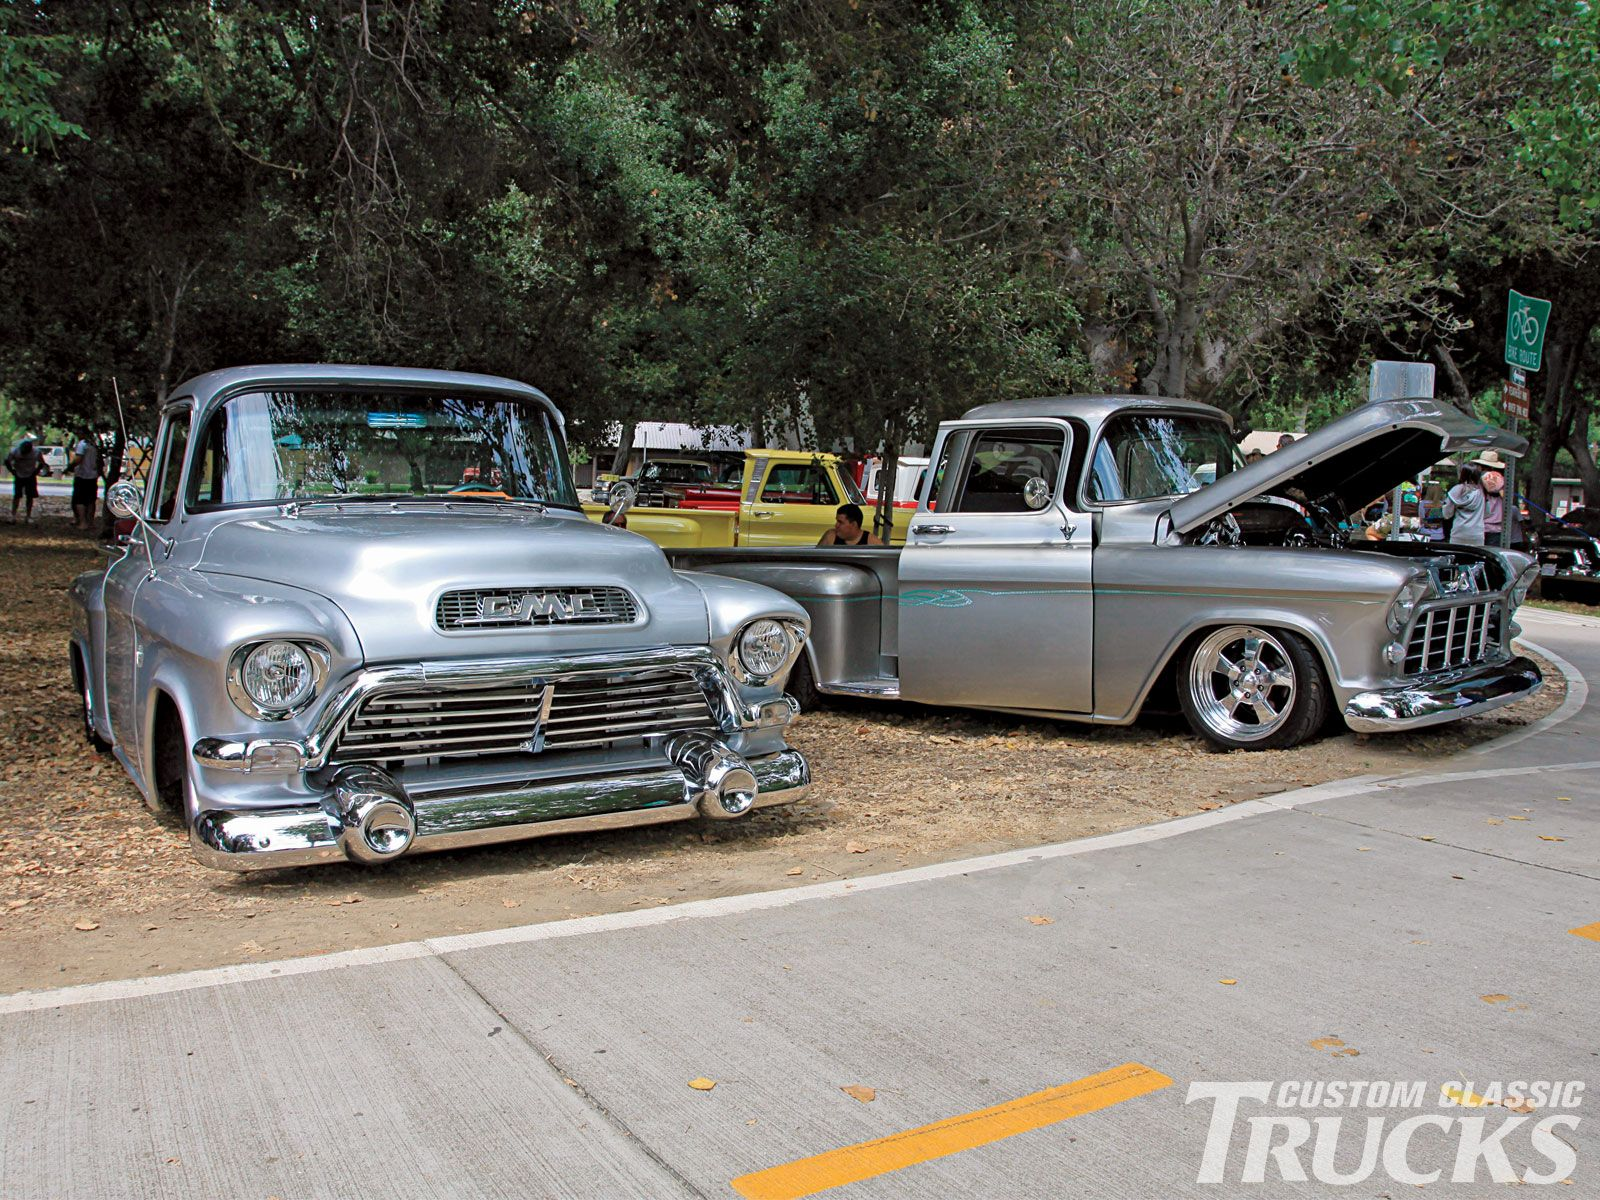 Miranda's silver Big-Window '55 Chevy at right. View Related Article